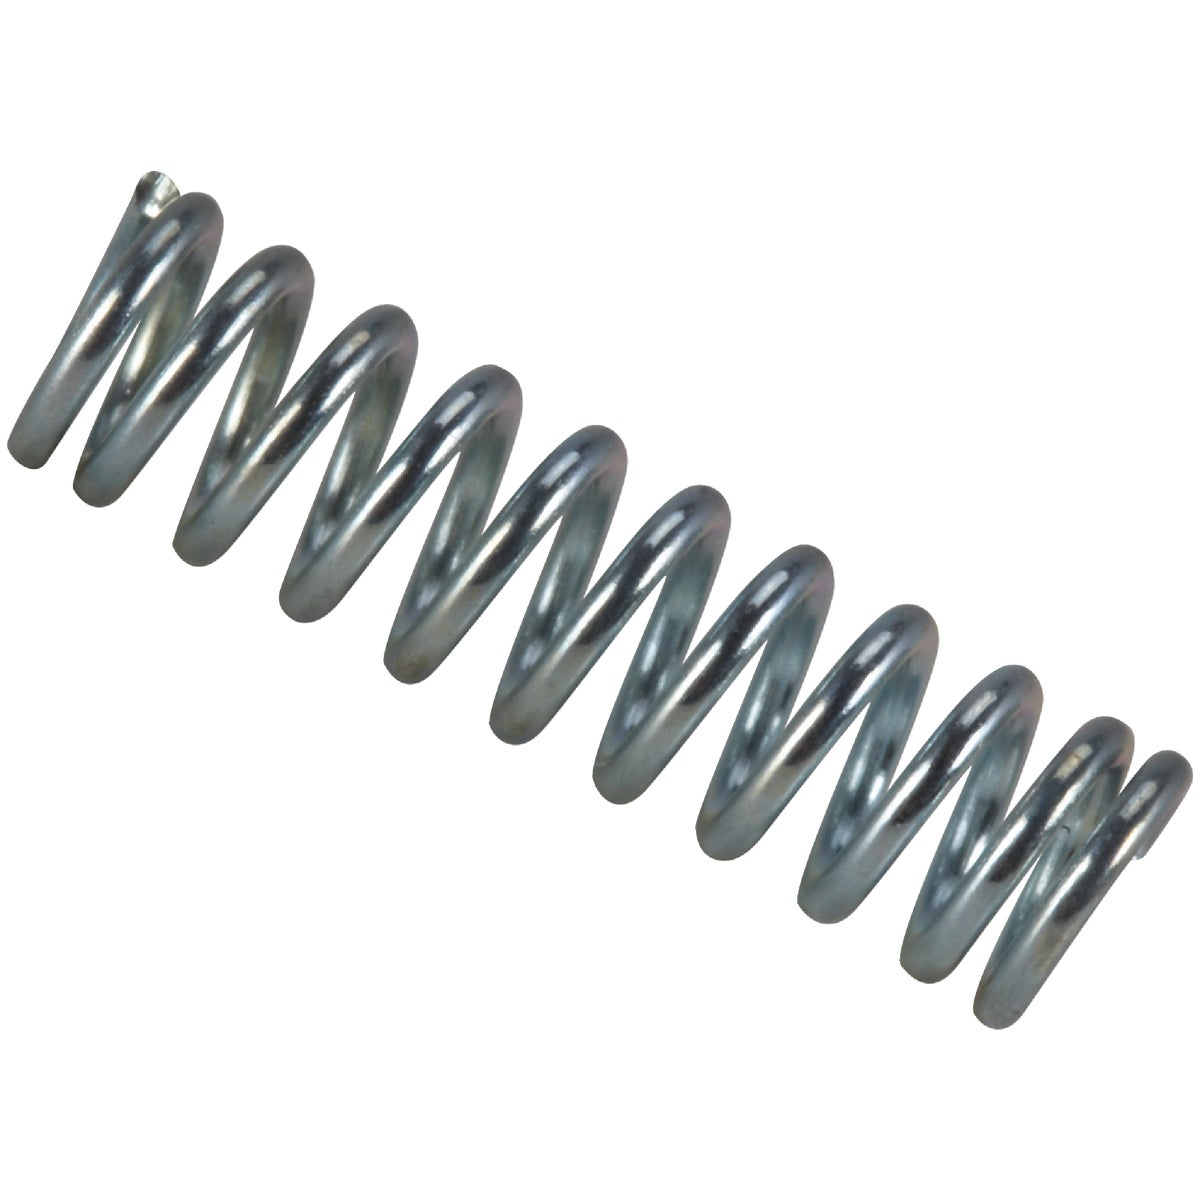 COMPRESSION SPRING - C-532 by Century Spring Corp